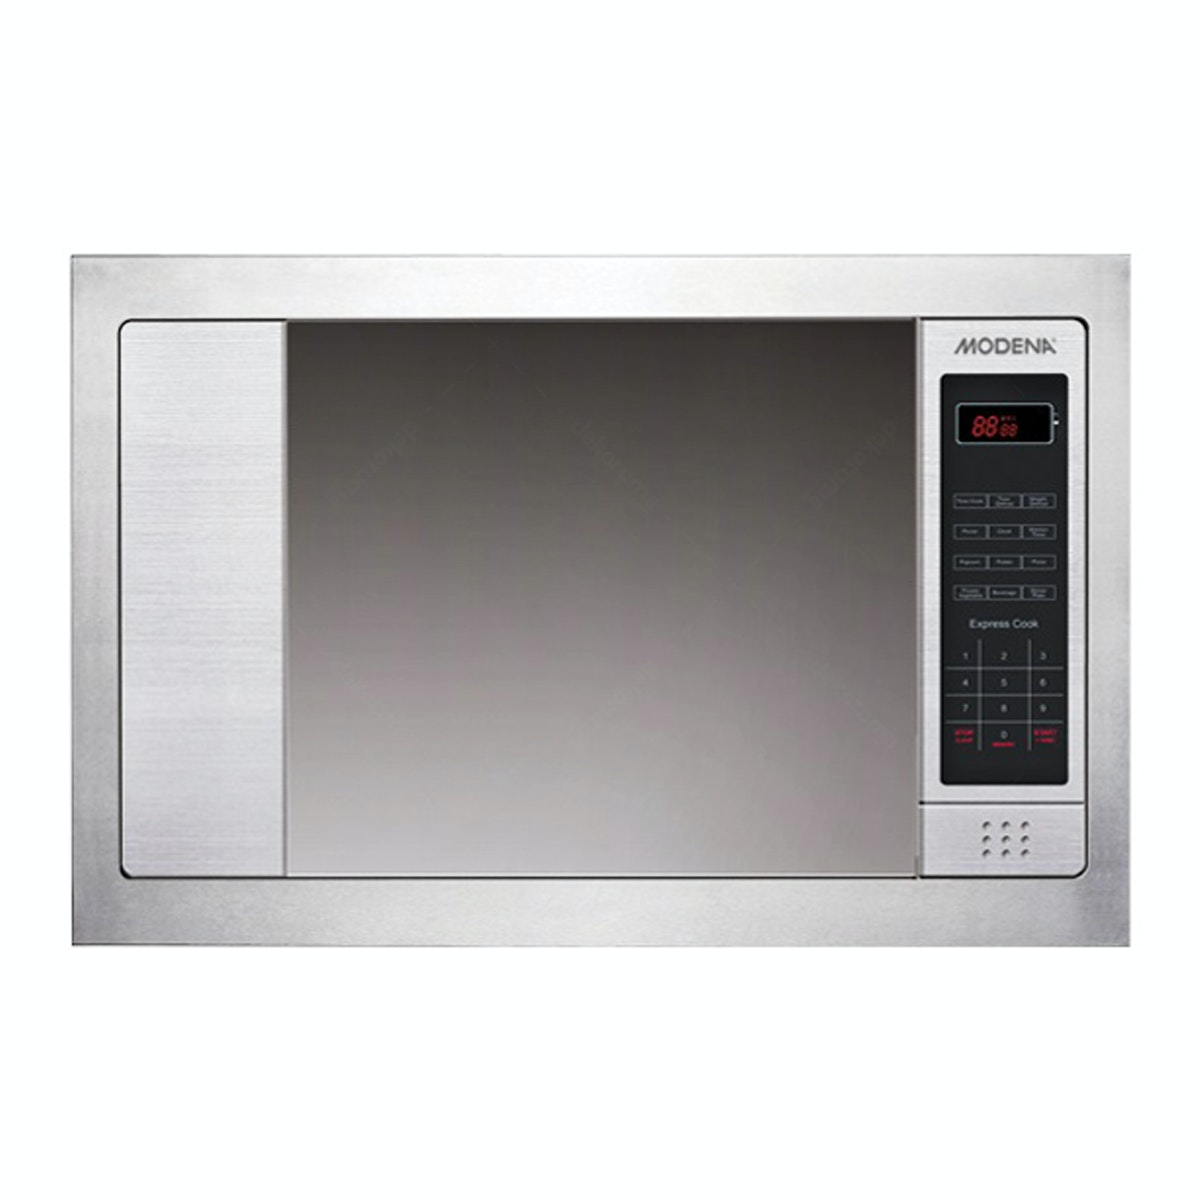 Modena Microwave Oven Tanam/Freestanding 31 Liter BUONO MG 3112